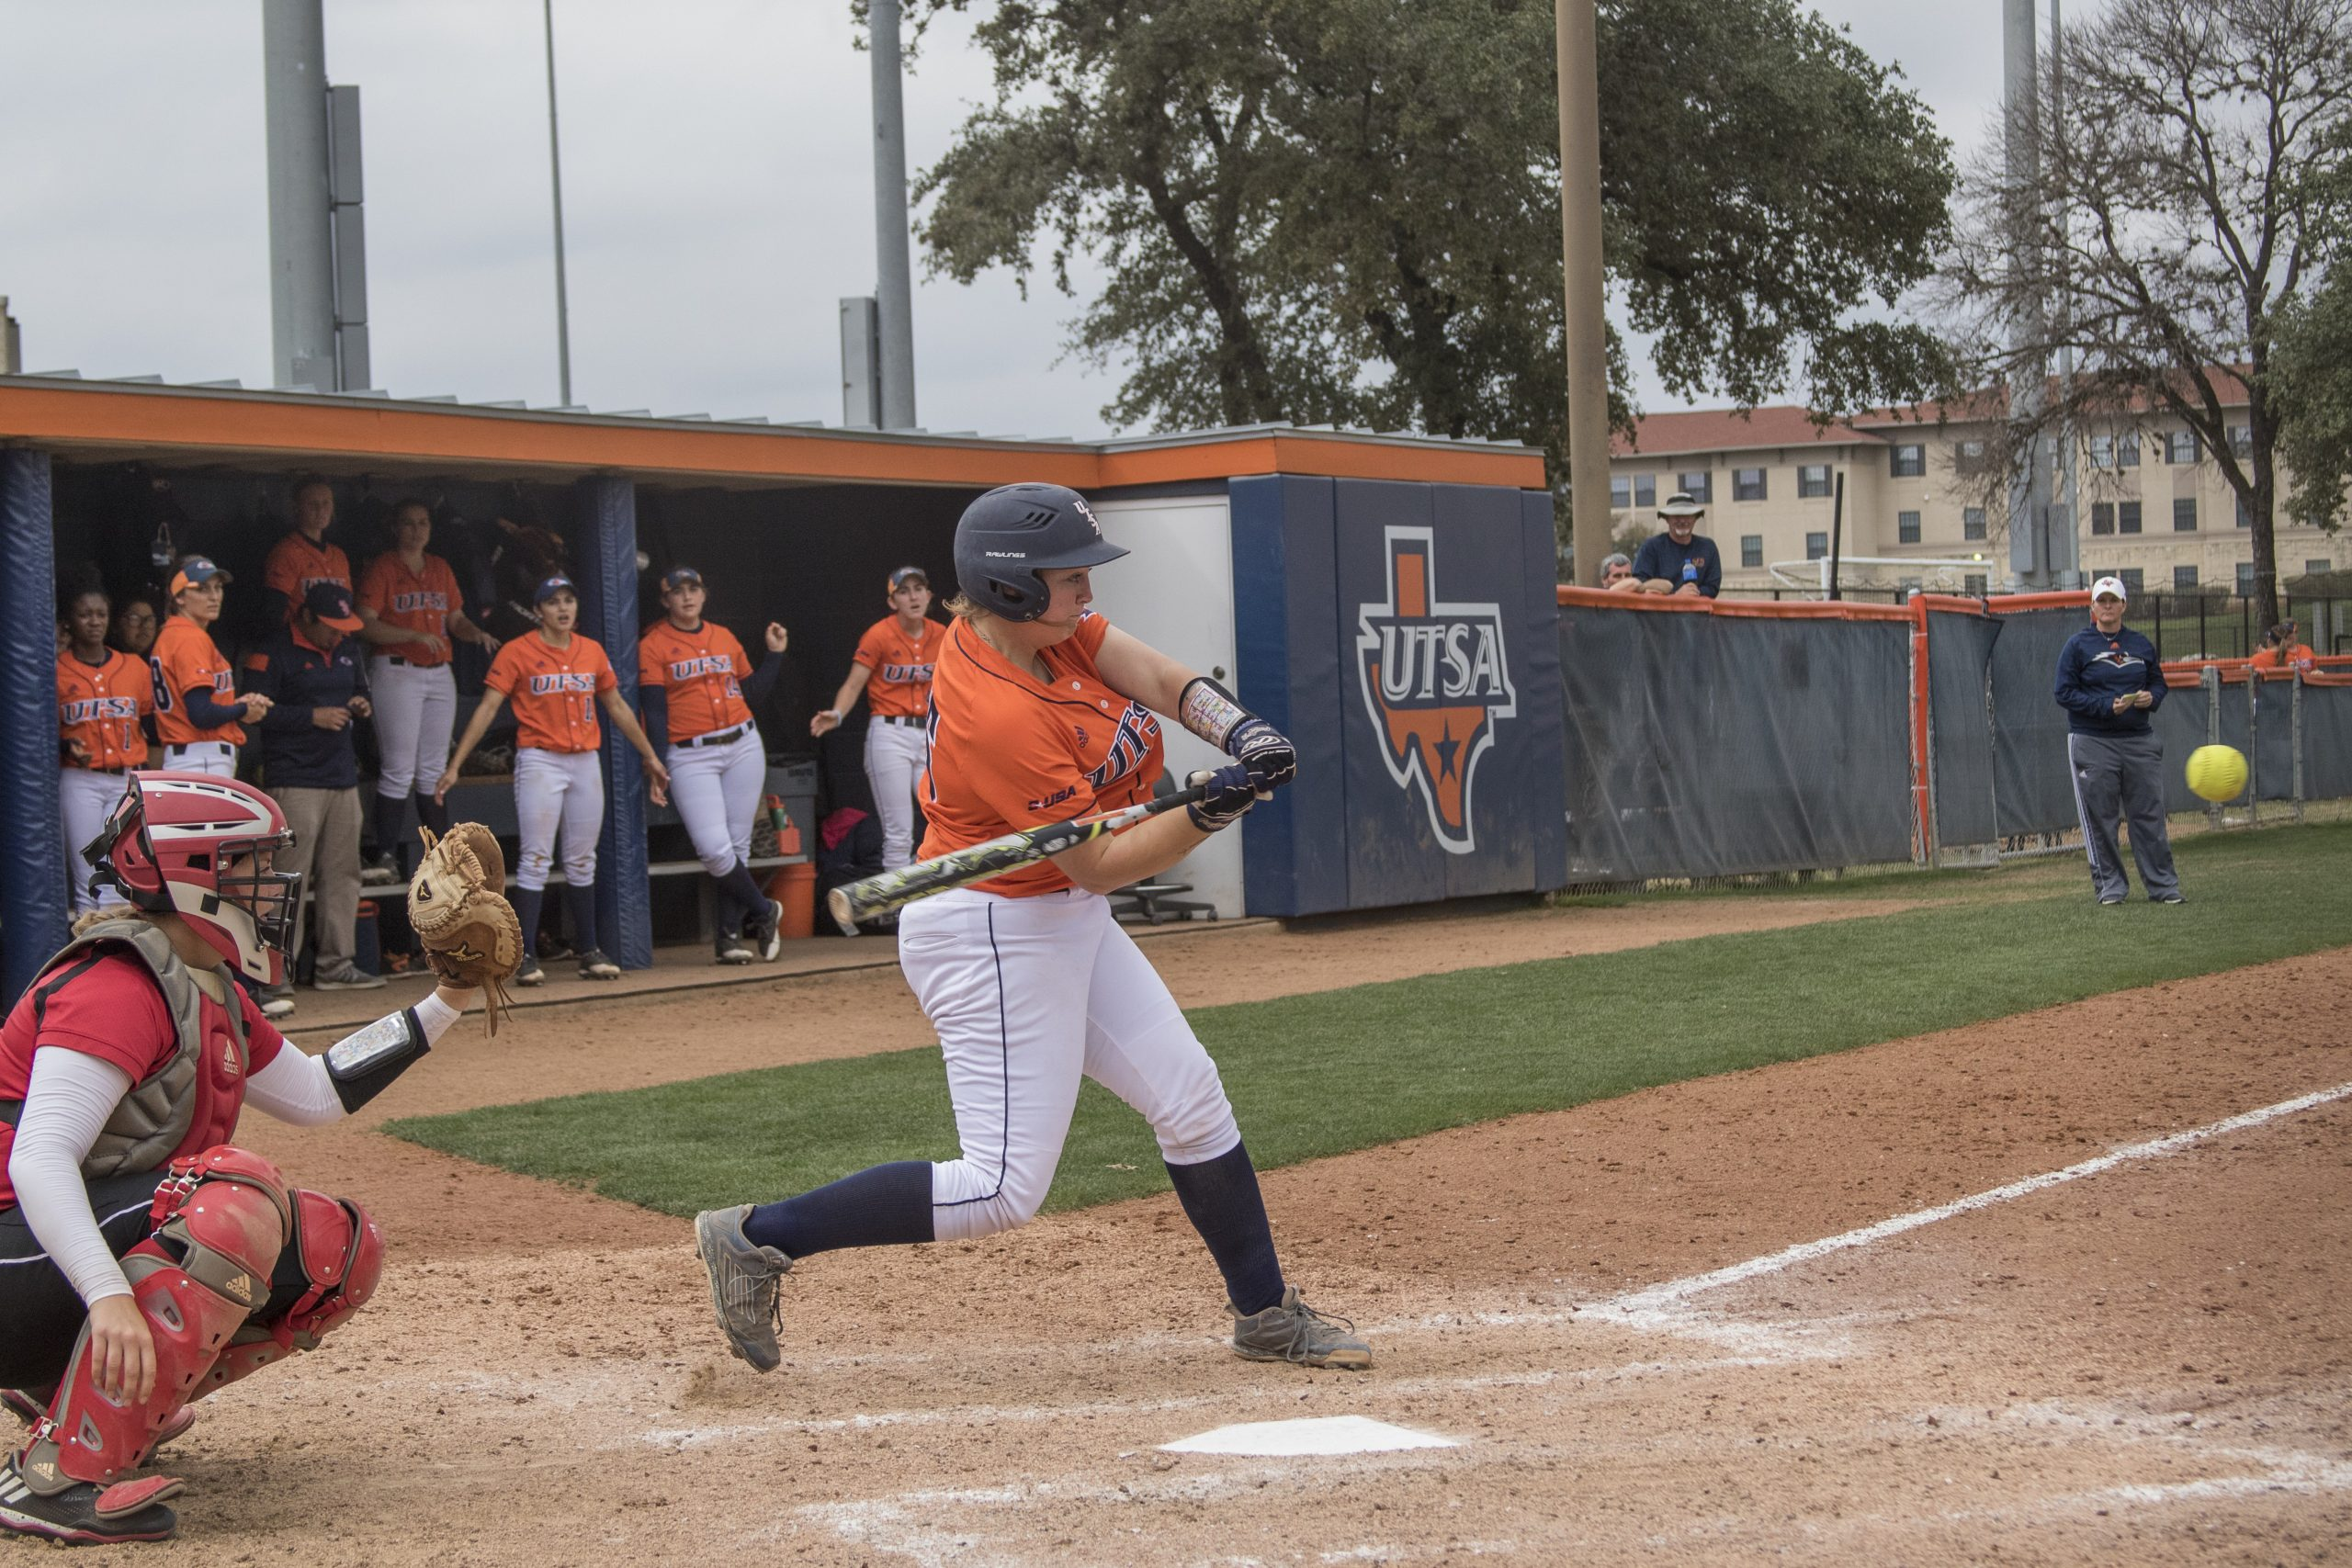 Randee Crawford locks in on the pitch as she takes a swing. Tristan Ipock/The Paisano